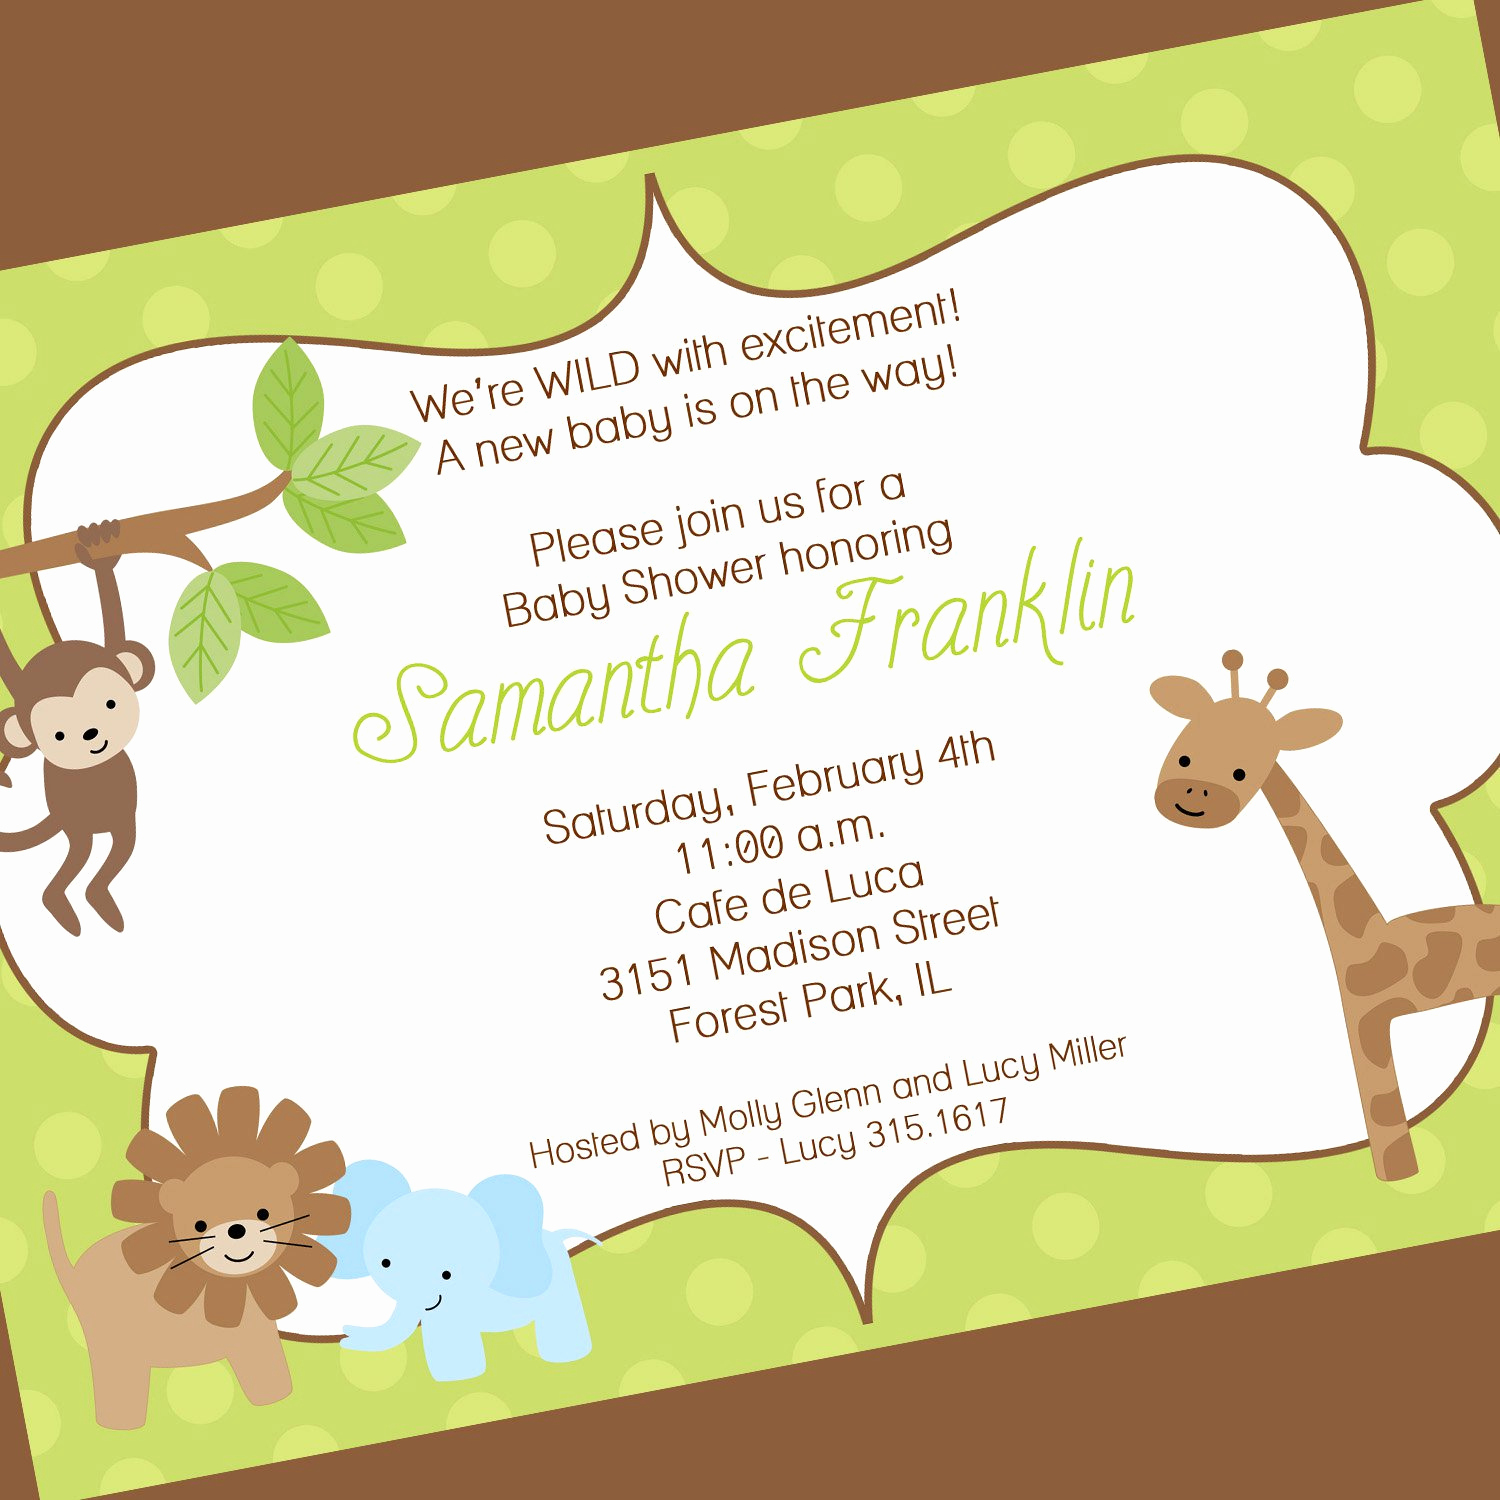 Baby Shower Invitation Message Lovely Birthday Invitation Mickey Mouse Birthday Invitations